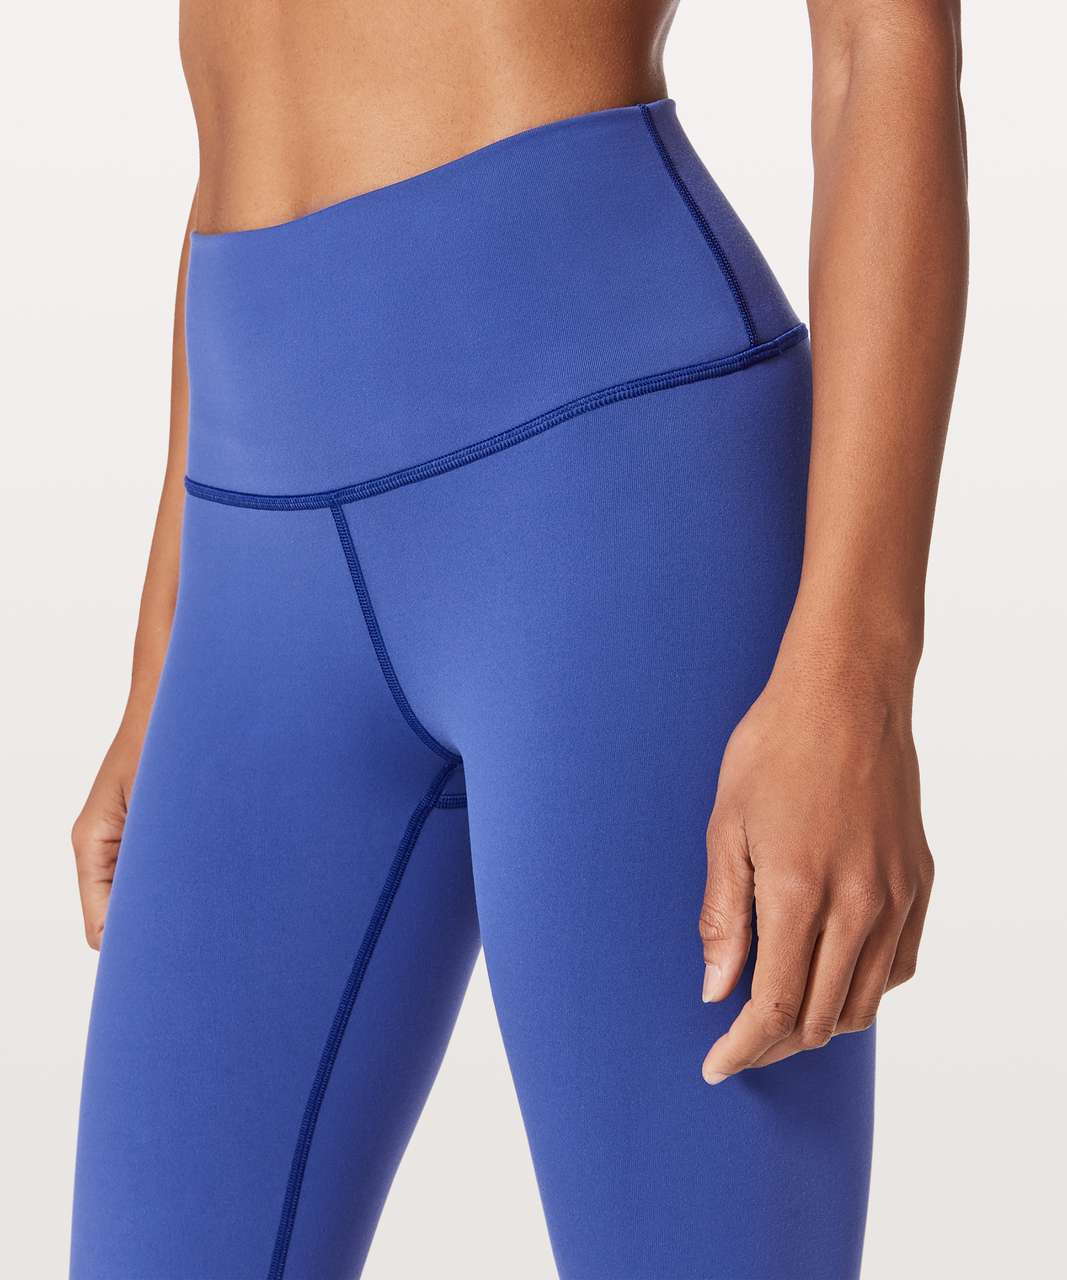 "Lululemon Wunder Under Hi-Rise 7/8 Tight *Full-On Luon 25"" - Moroccan Blue"